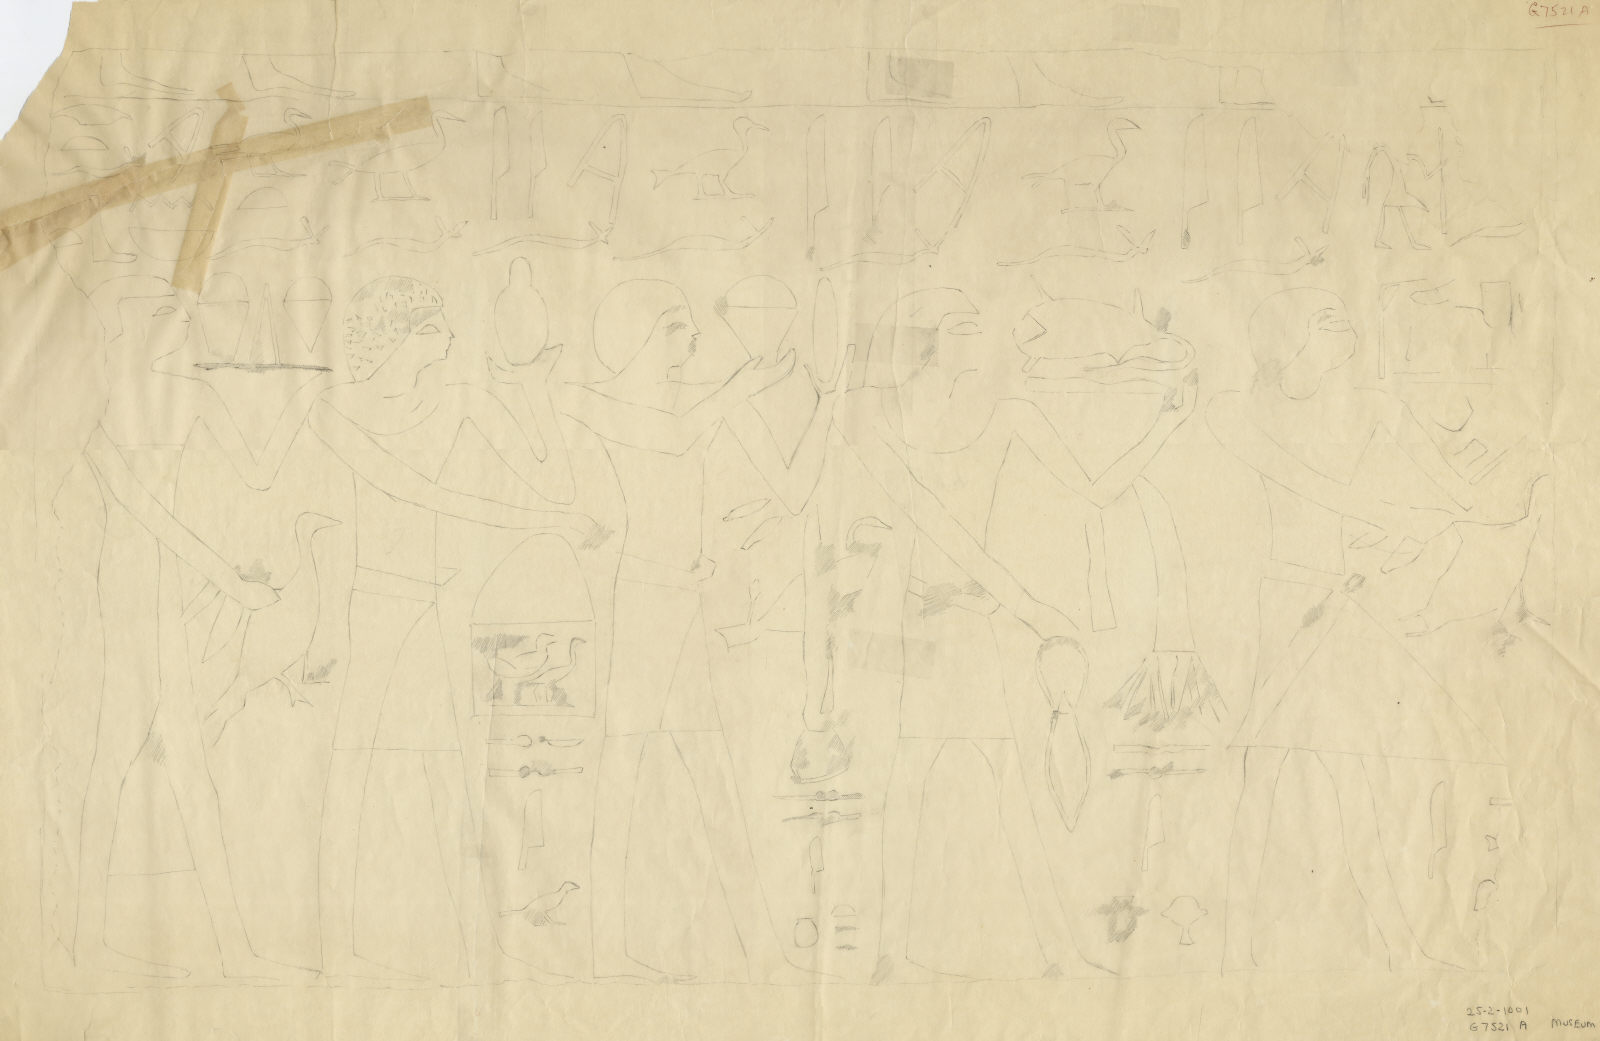 Drawings: G 7521: relief